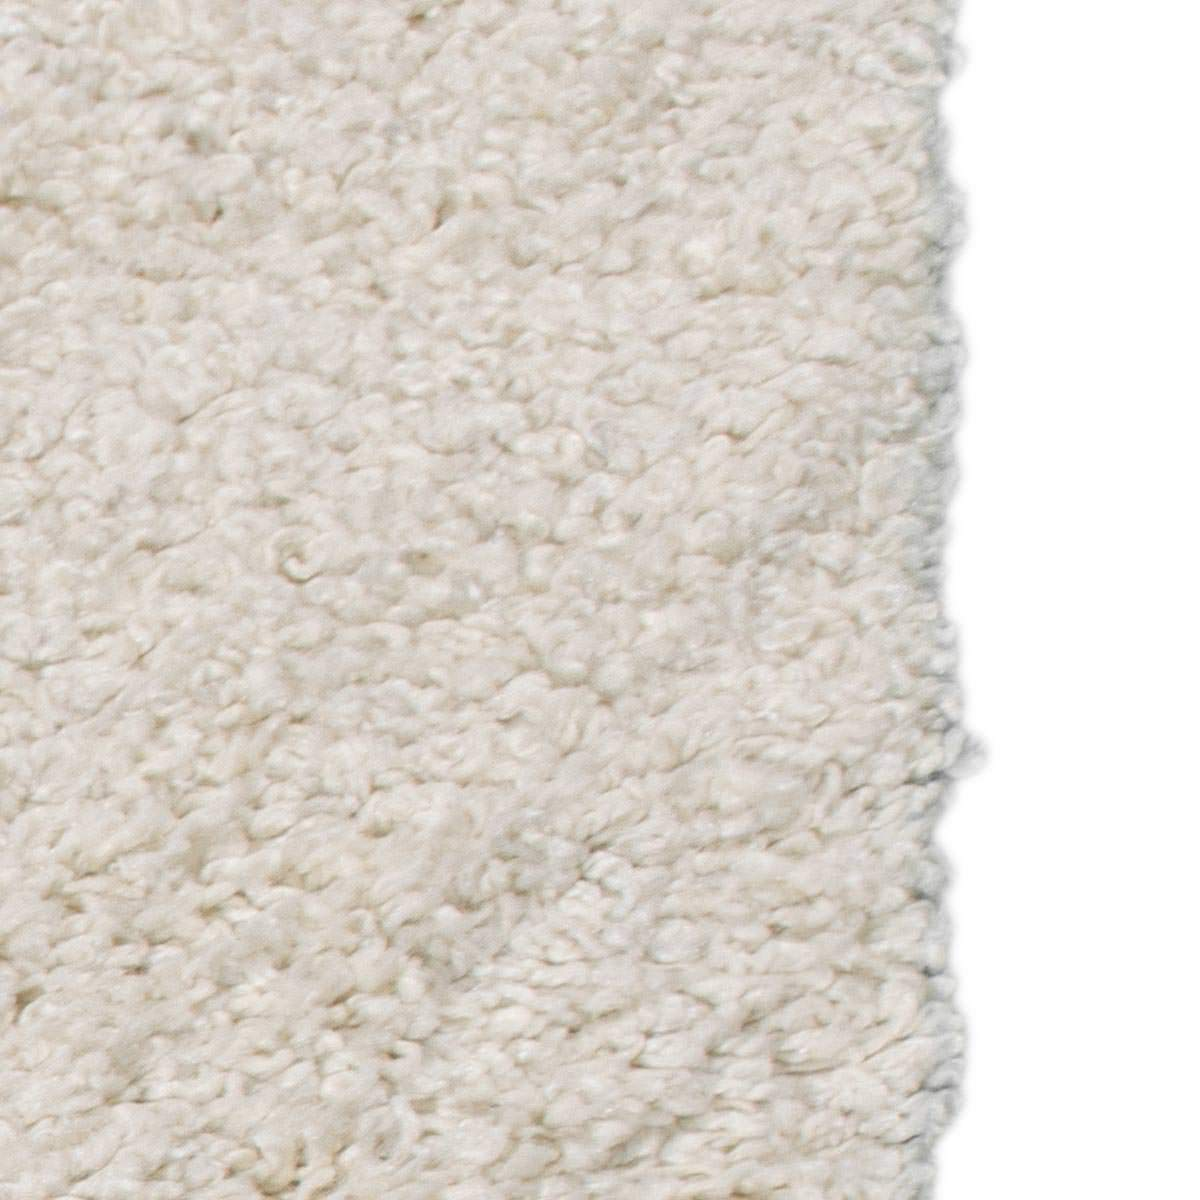 Shaggy Marrakech Rug 05 Cream/Black 5